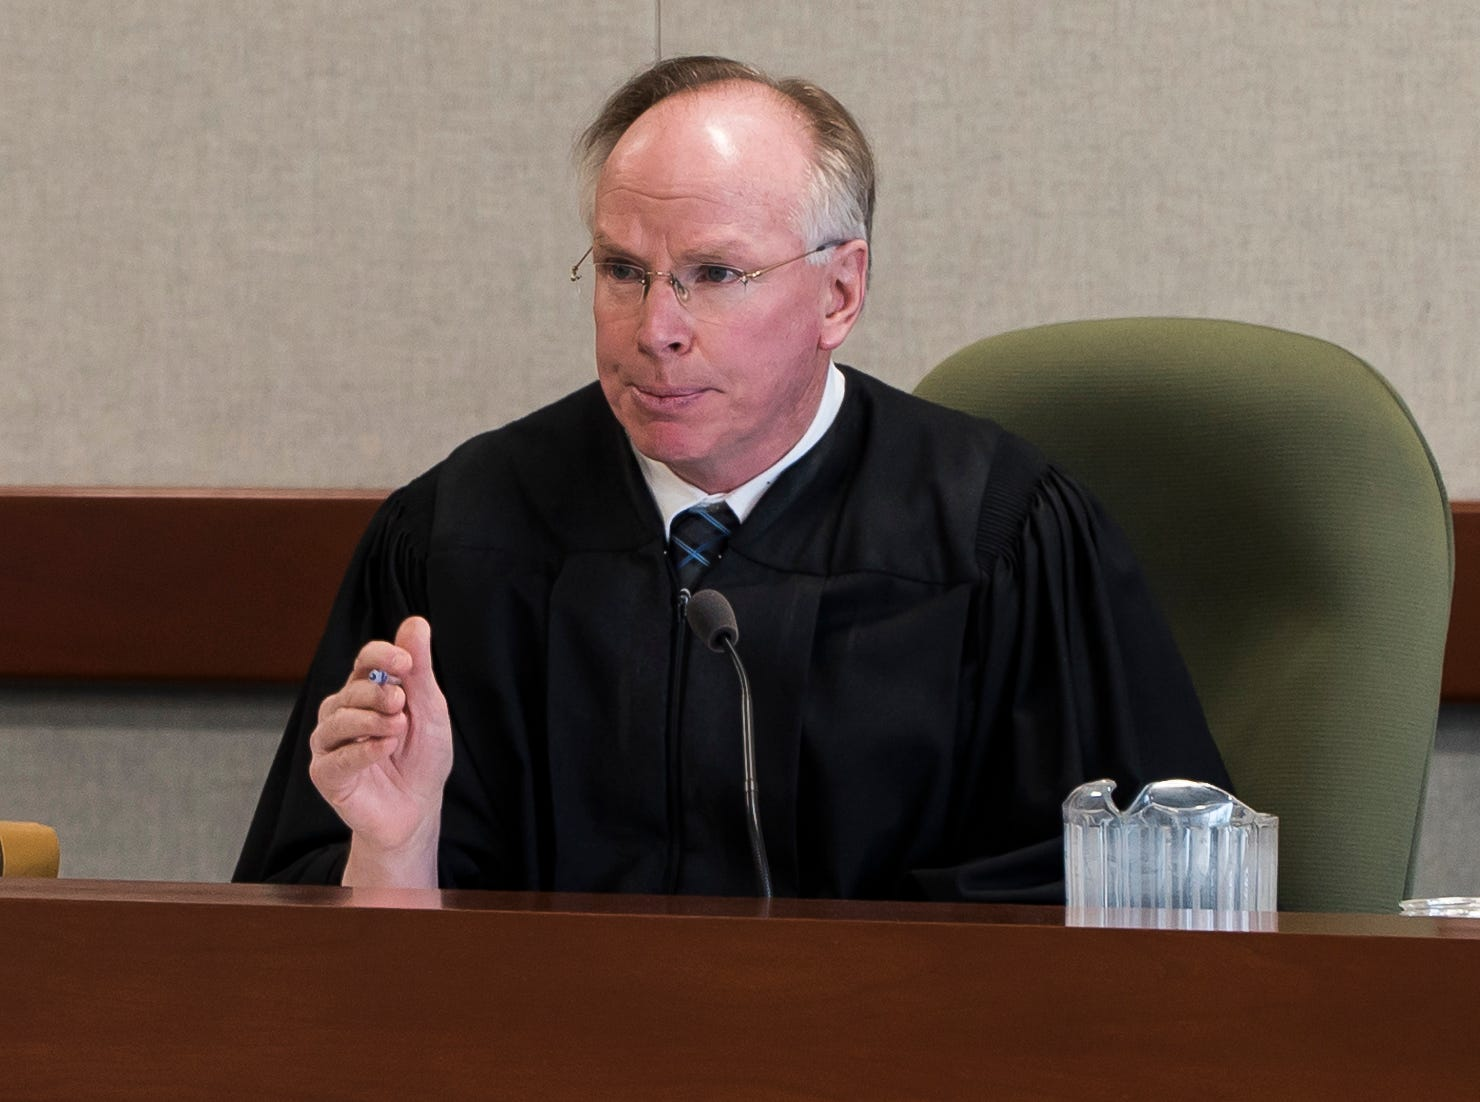 Judge Kevin Griffin denies a motion by Steven Bourgoin's defense on Monday morning, May 13, 2019, in Vermont Superior Court in Burlington asking for a mistrial, arguing that the state didn't properly share evidence that came out in testimony on Friday. The judge denied the motion.